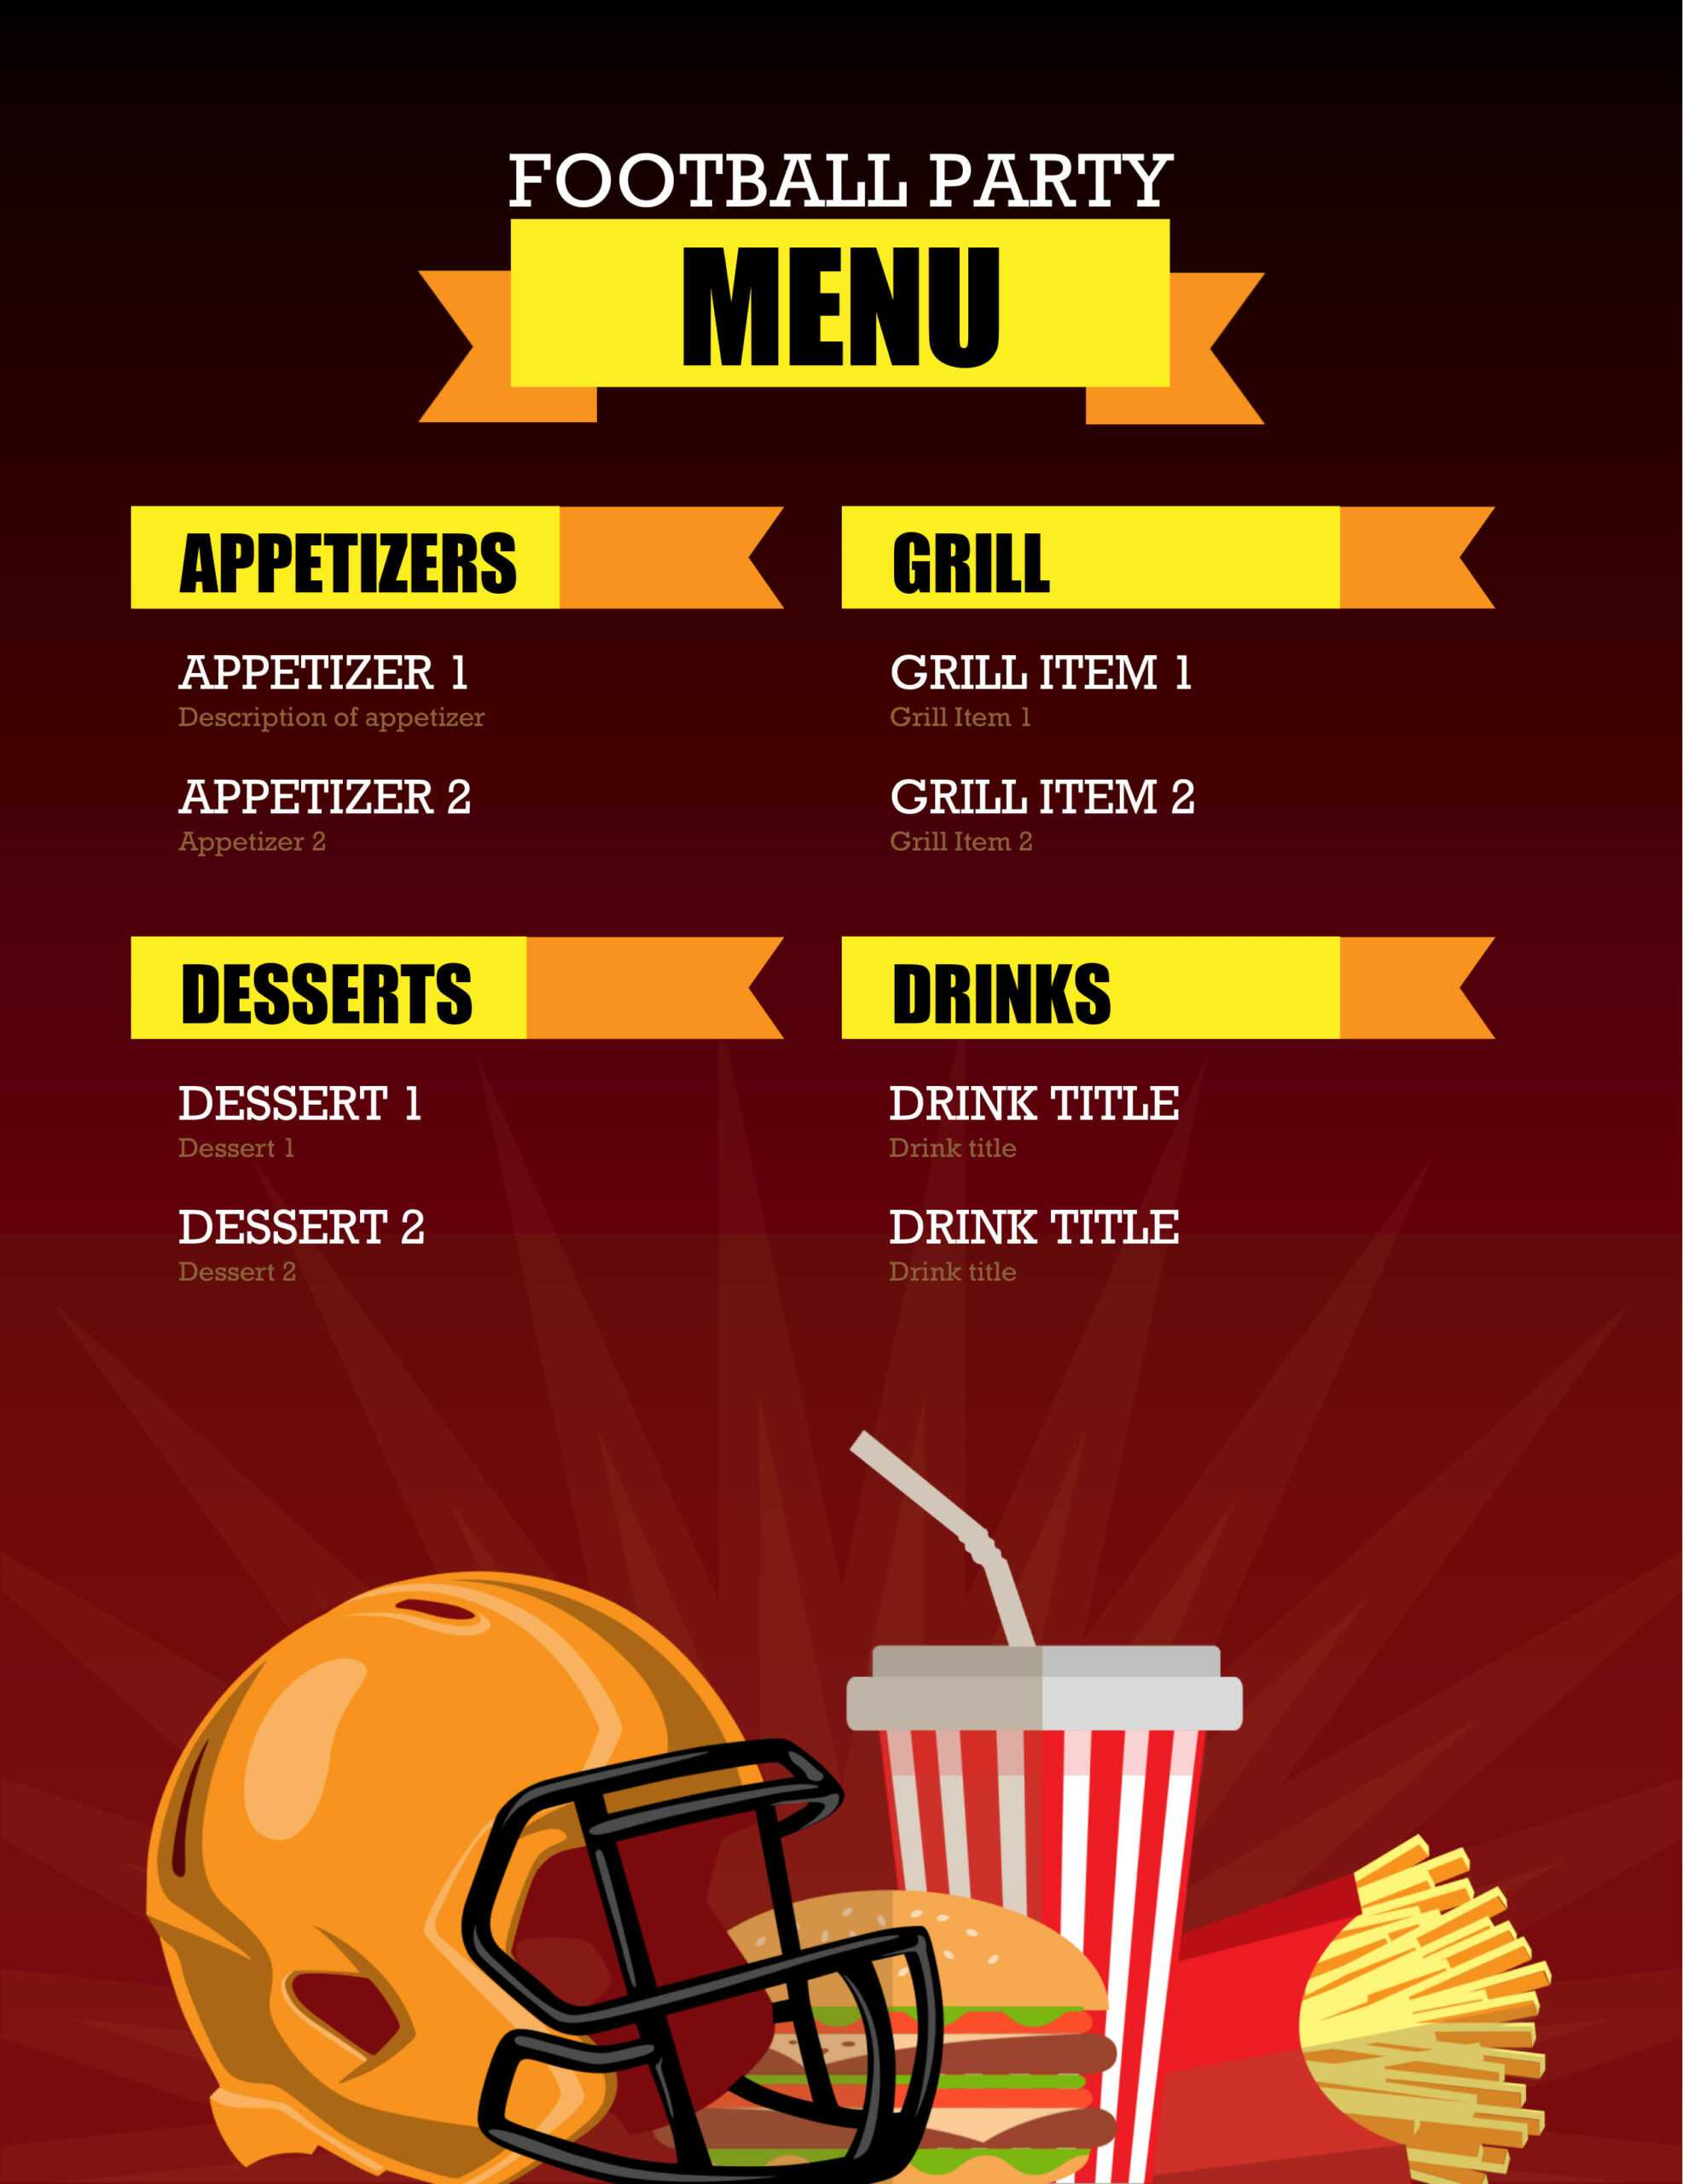 32 Free Simple Menu Templates For Restaurants, Cafes, And In Fun Menu Templates